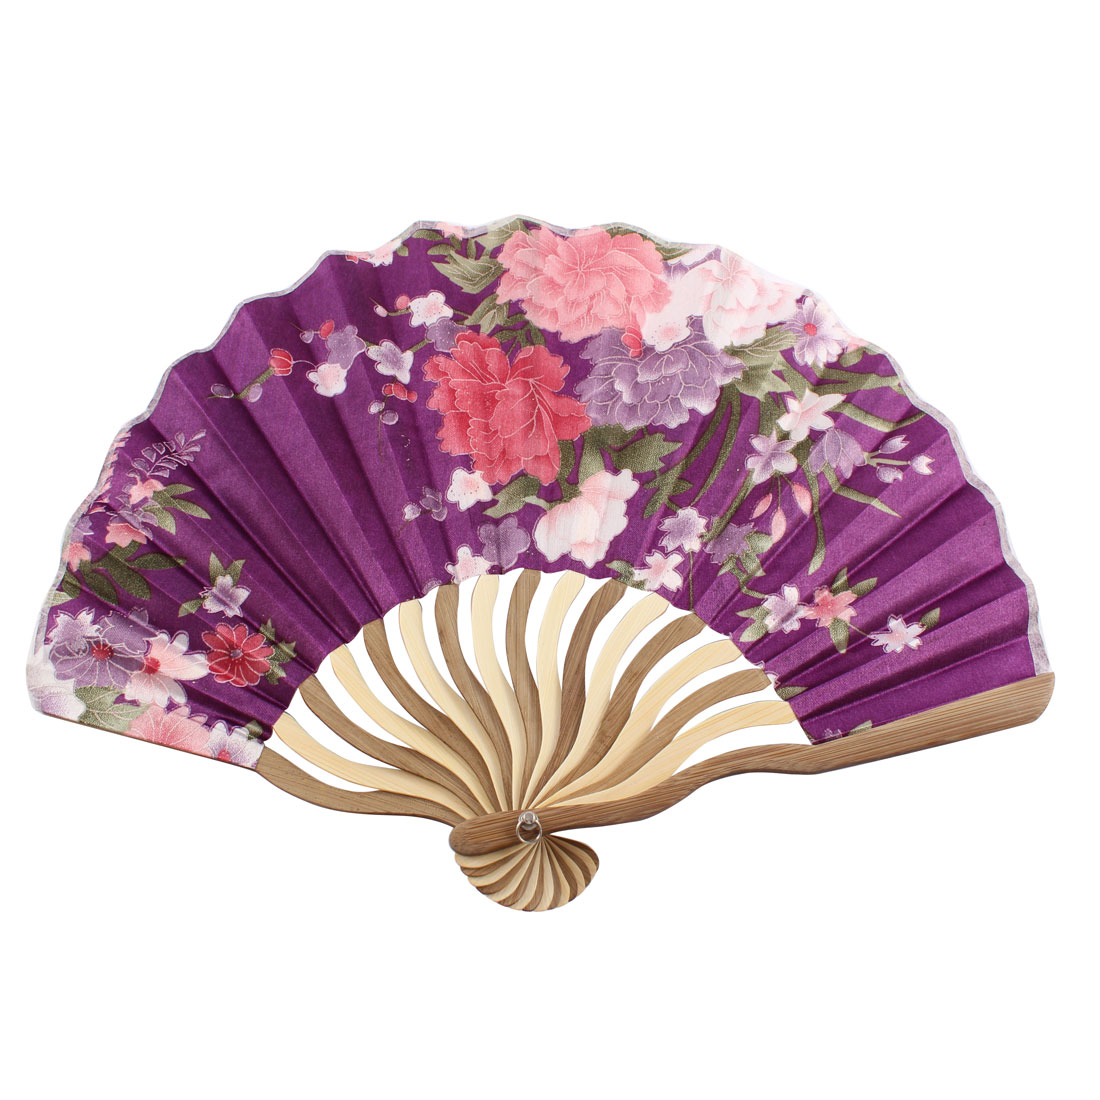 Lady Dancer Party Flower Pattern Nylon Bamboo Rib Portabie Foldable Hand Held Fan Gift Decoration